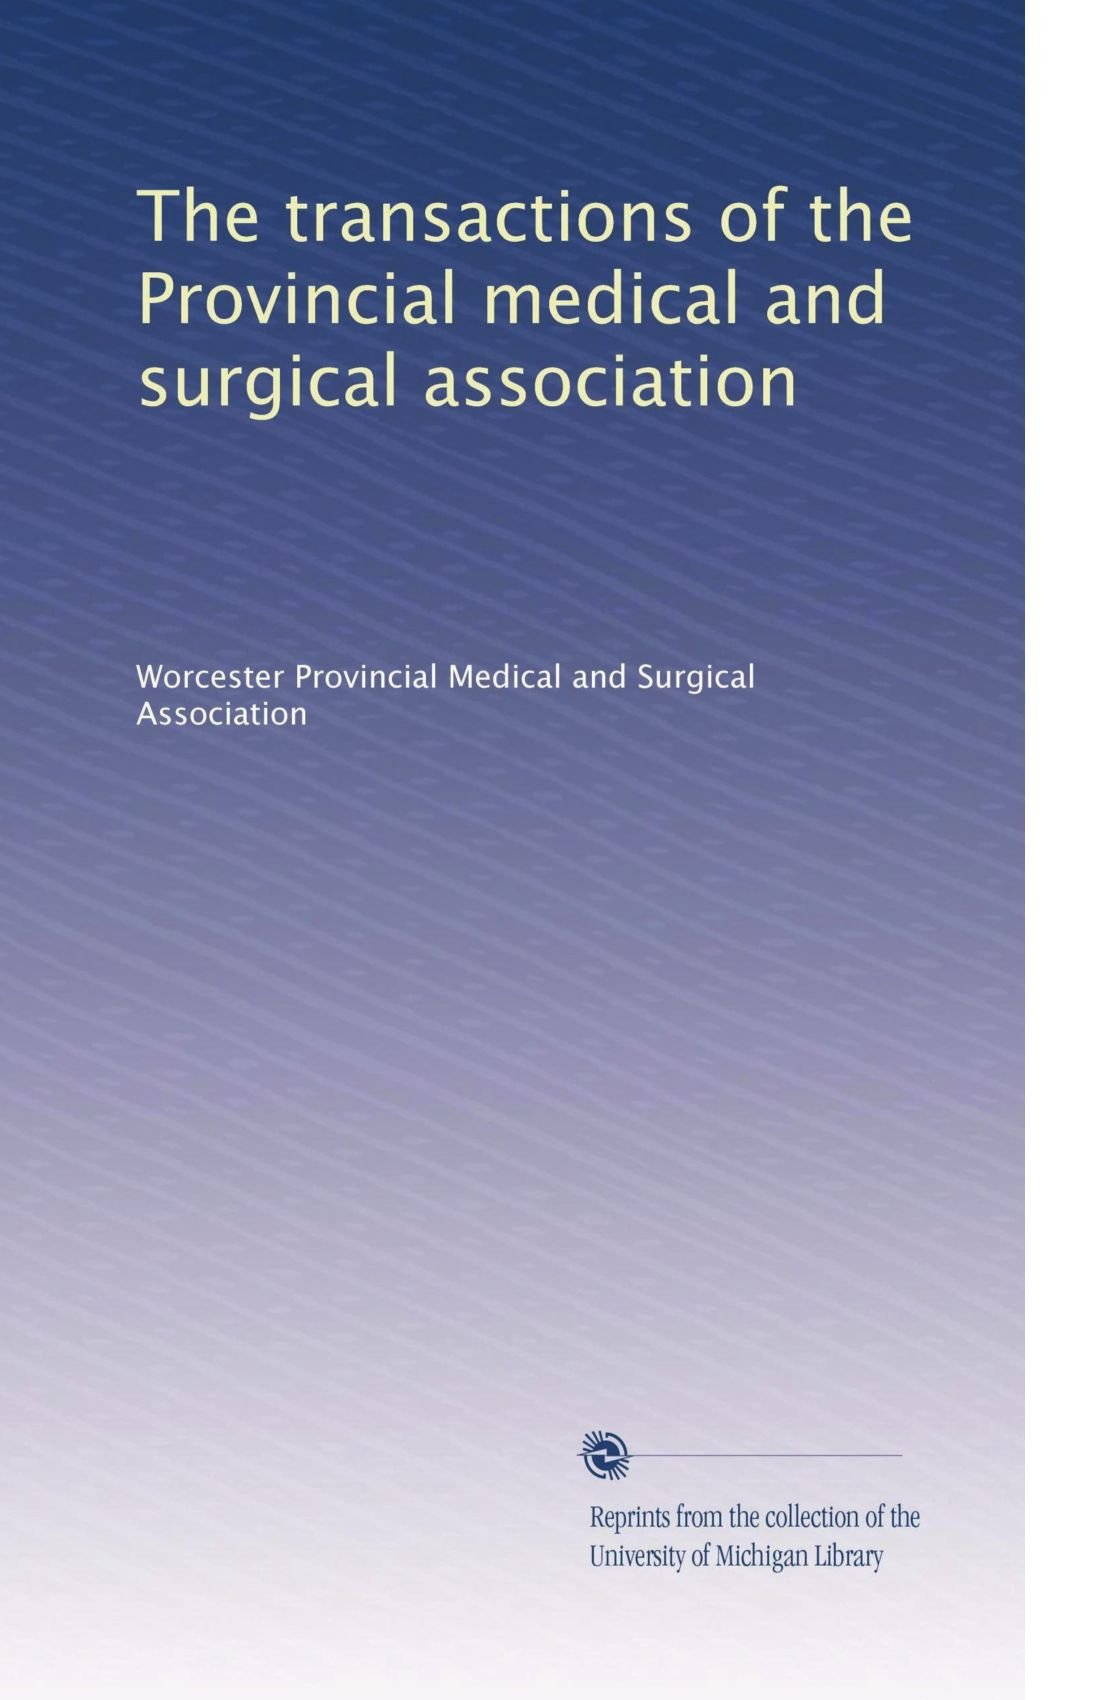 Download The transactions of the Provincial medical and surgical association pdf